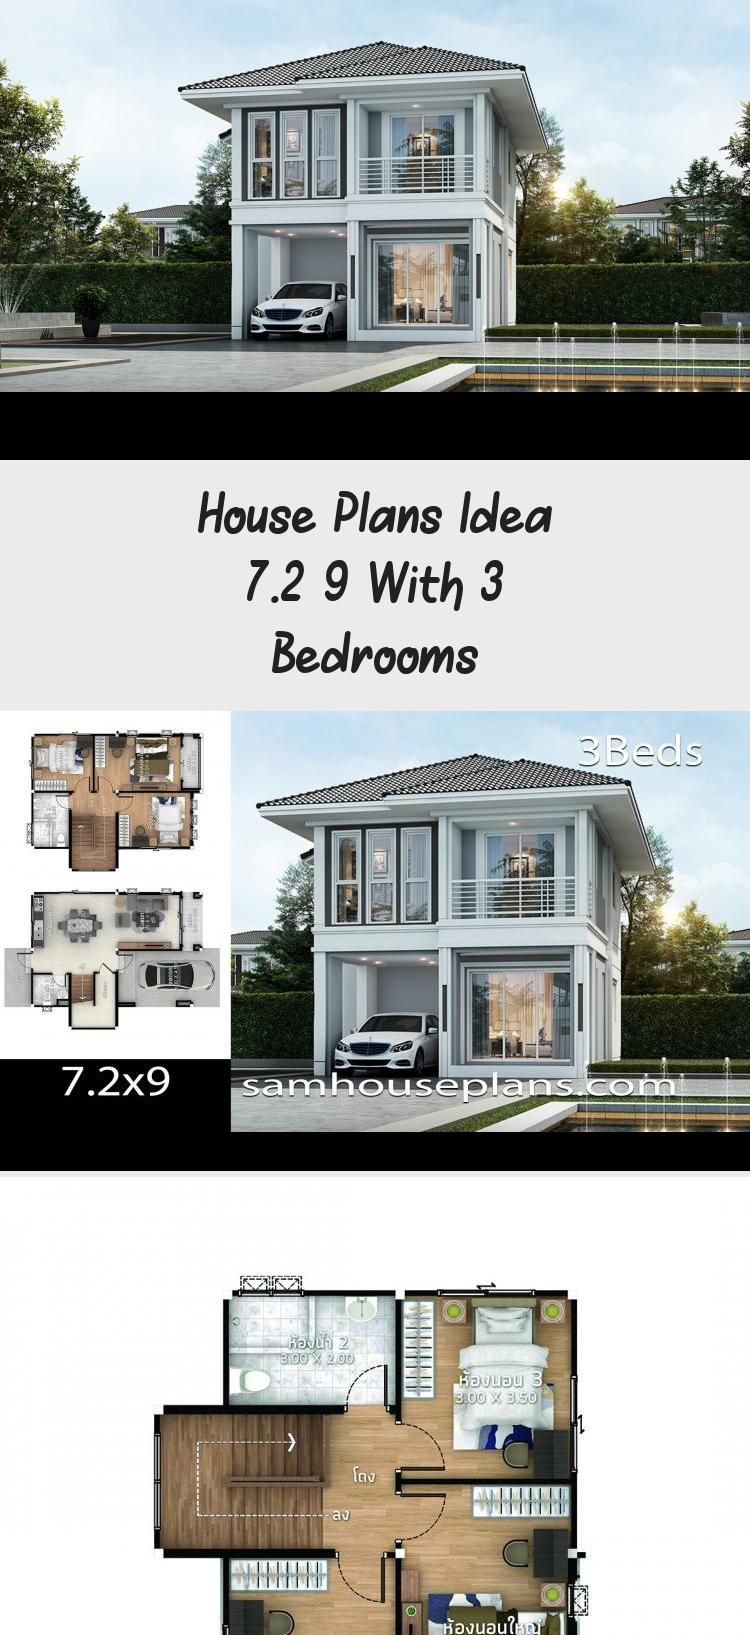 House Plans Idea 7 2 9 With 3 Bedrooms In 2020 Pool House Plans House Modern House Plans